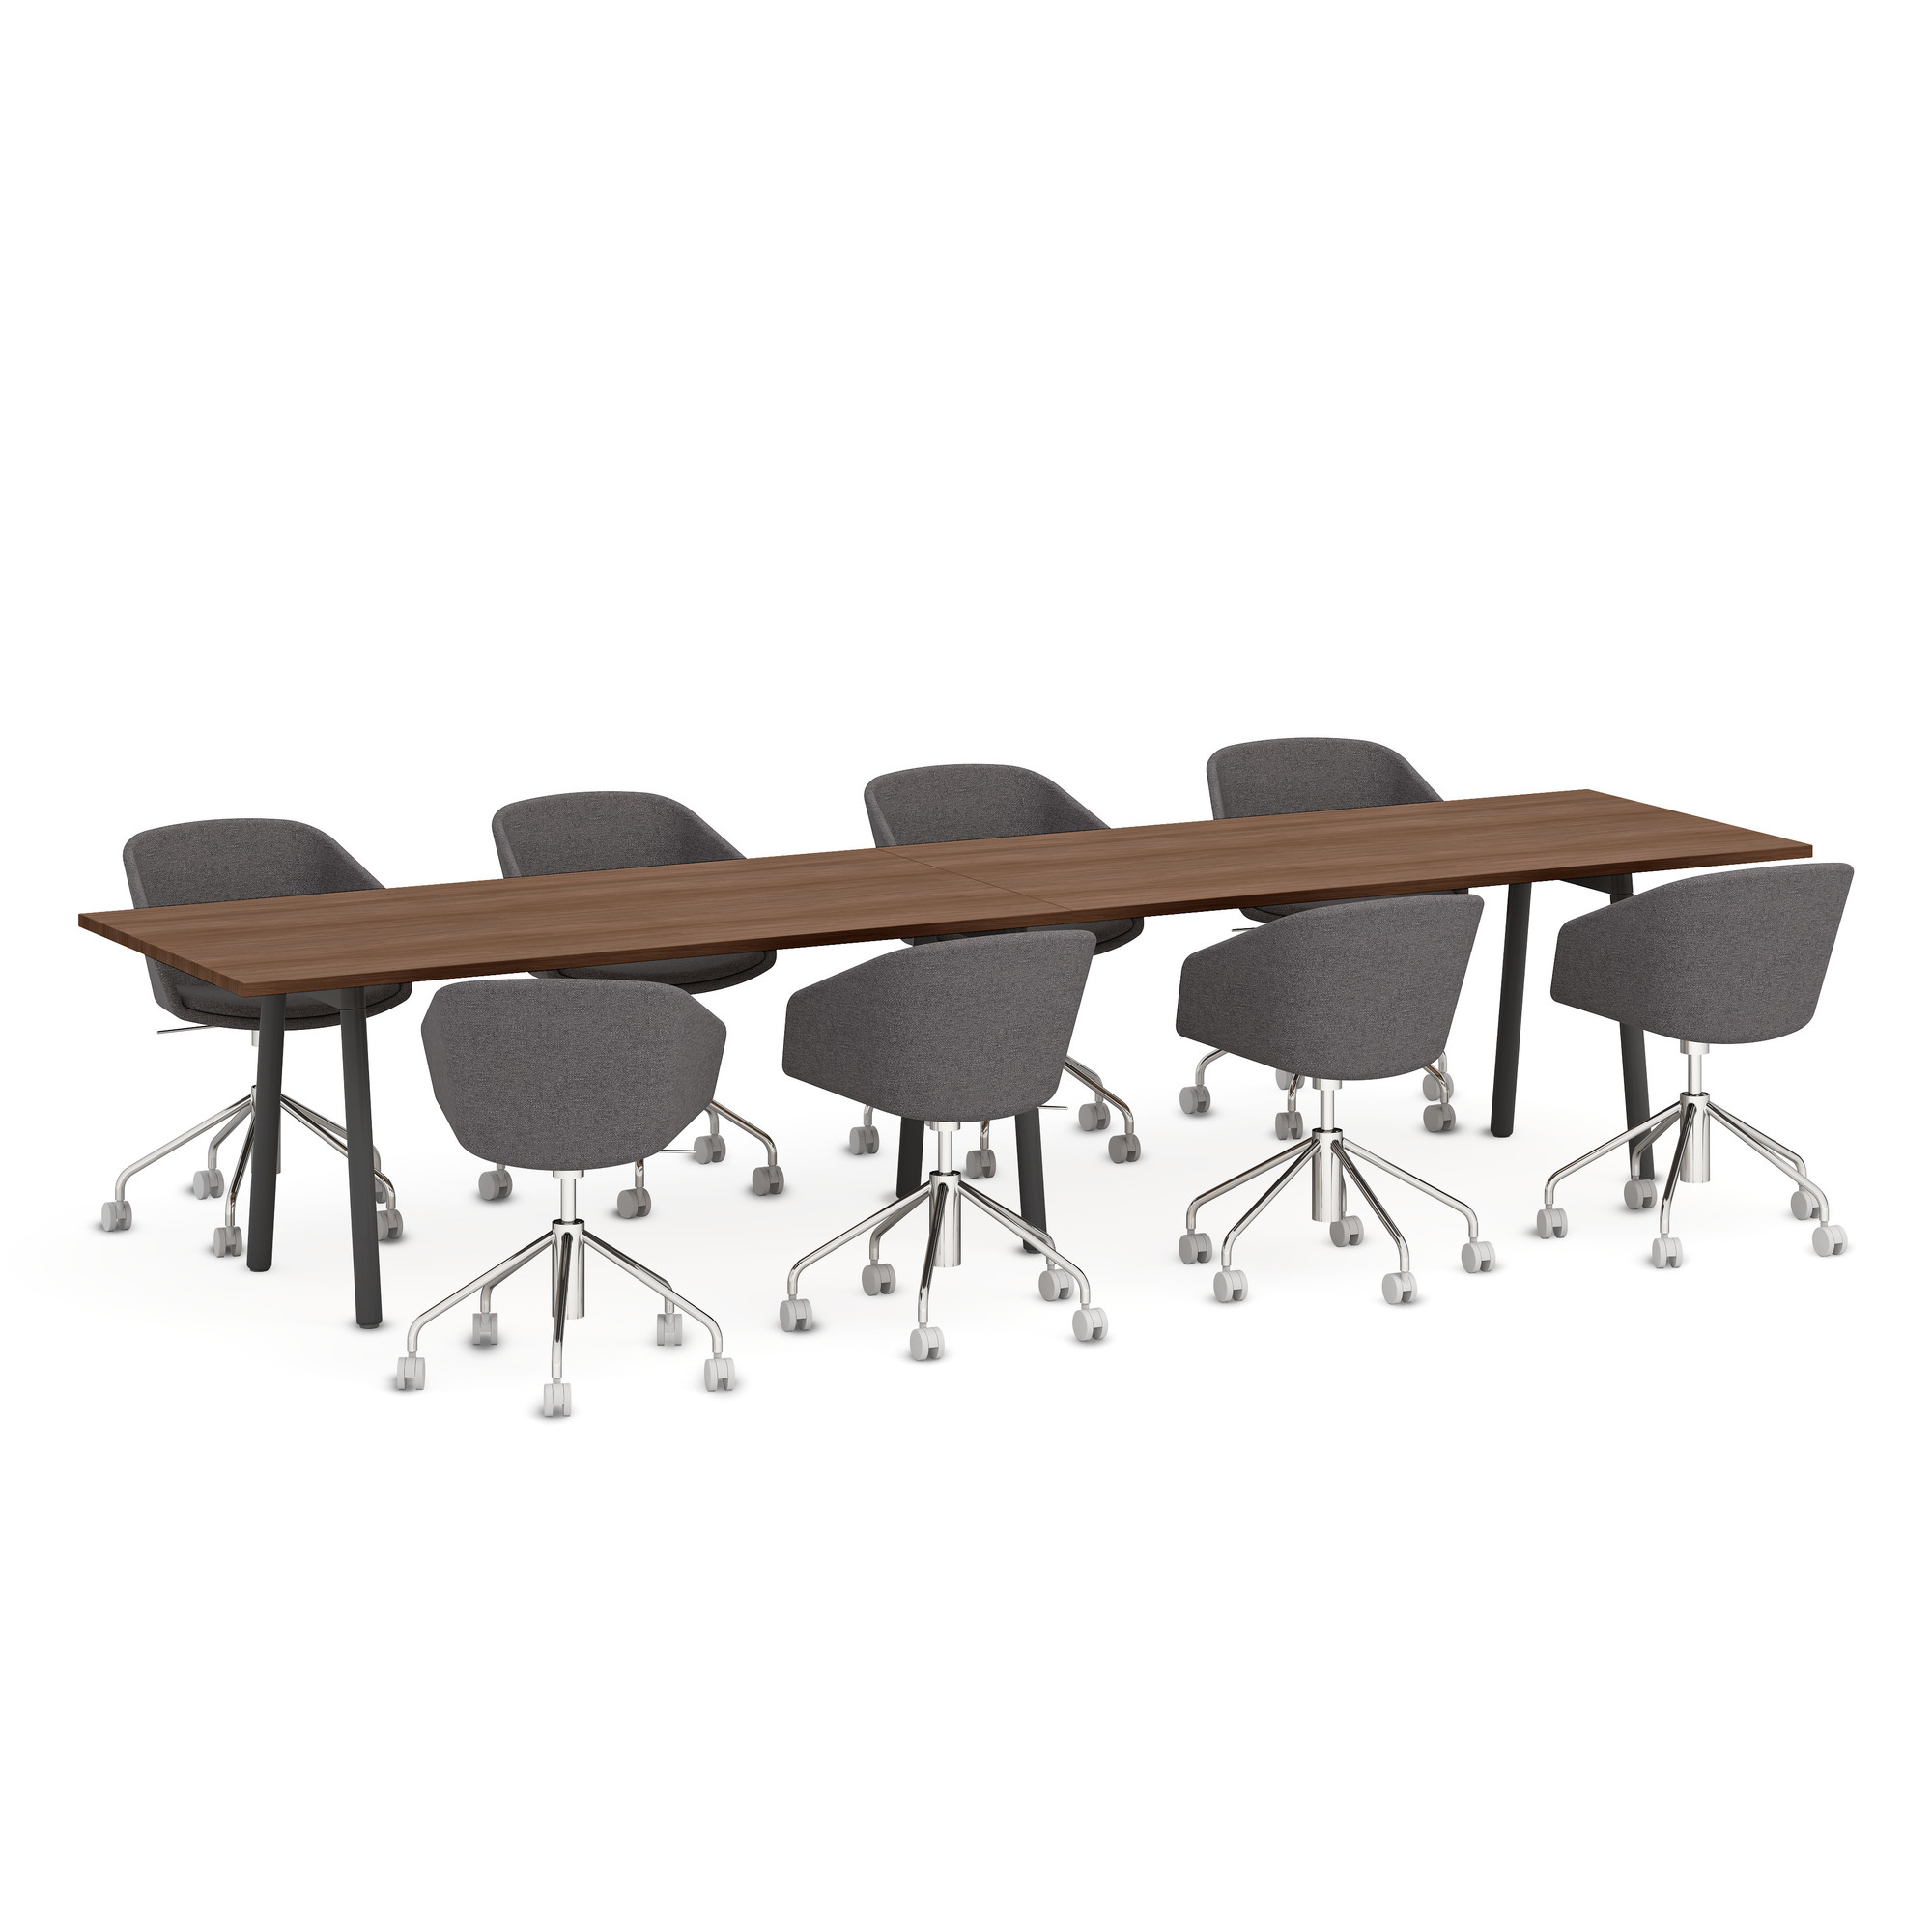 Series A Table X Walnut Charcoal Modern Office Furniture - 144 conference table